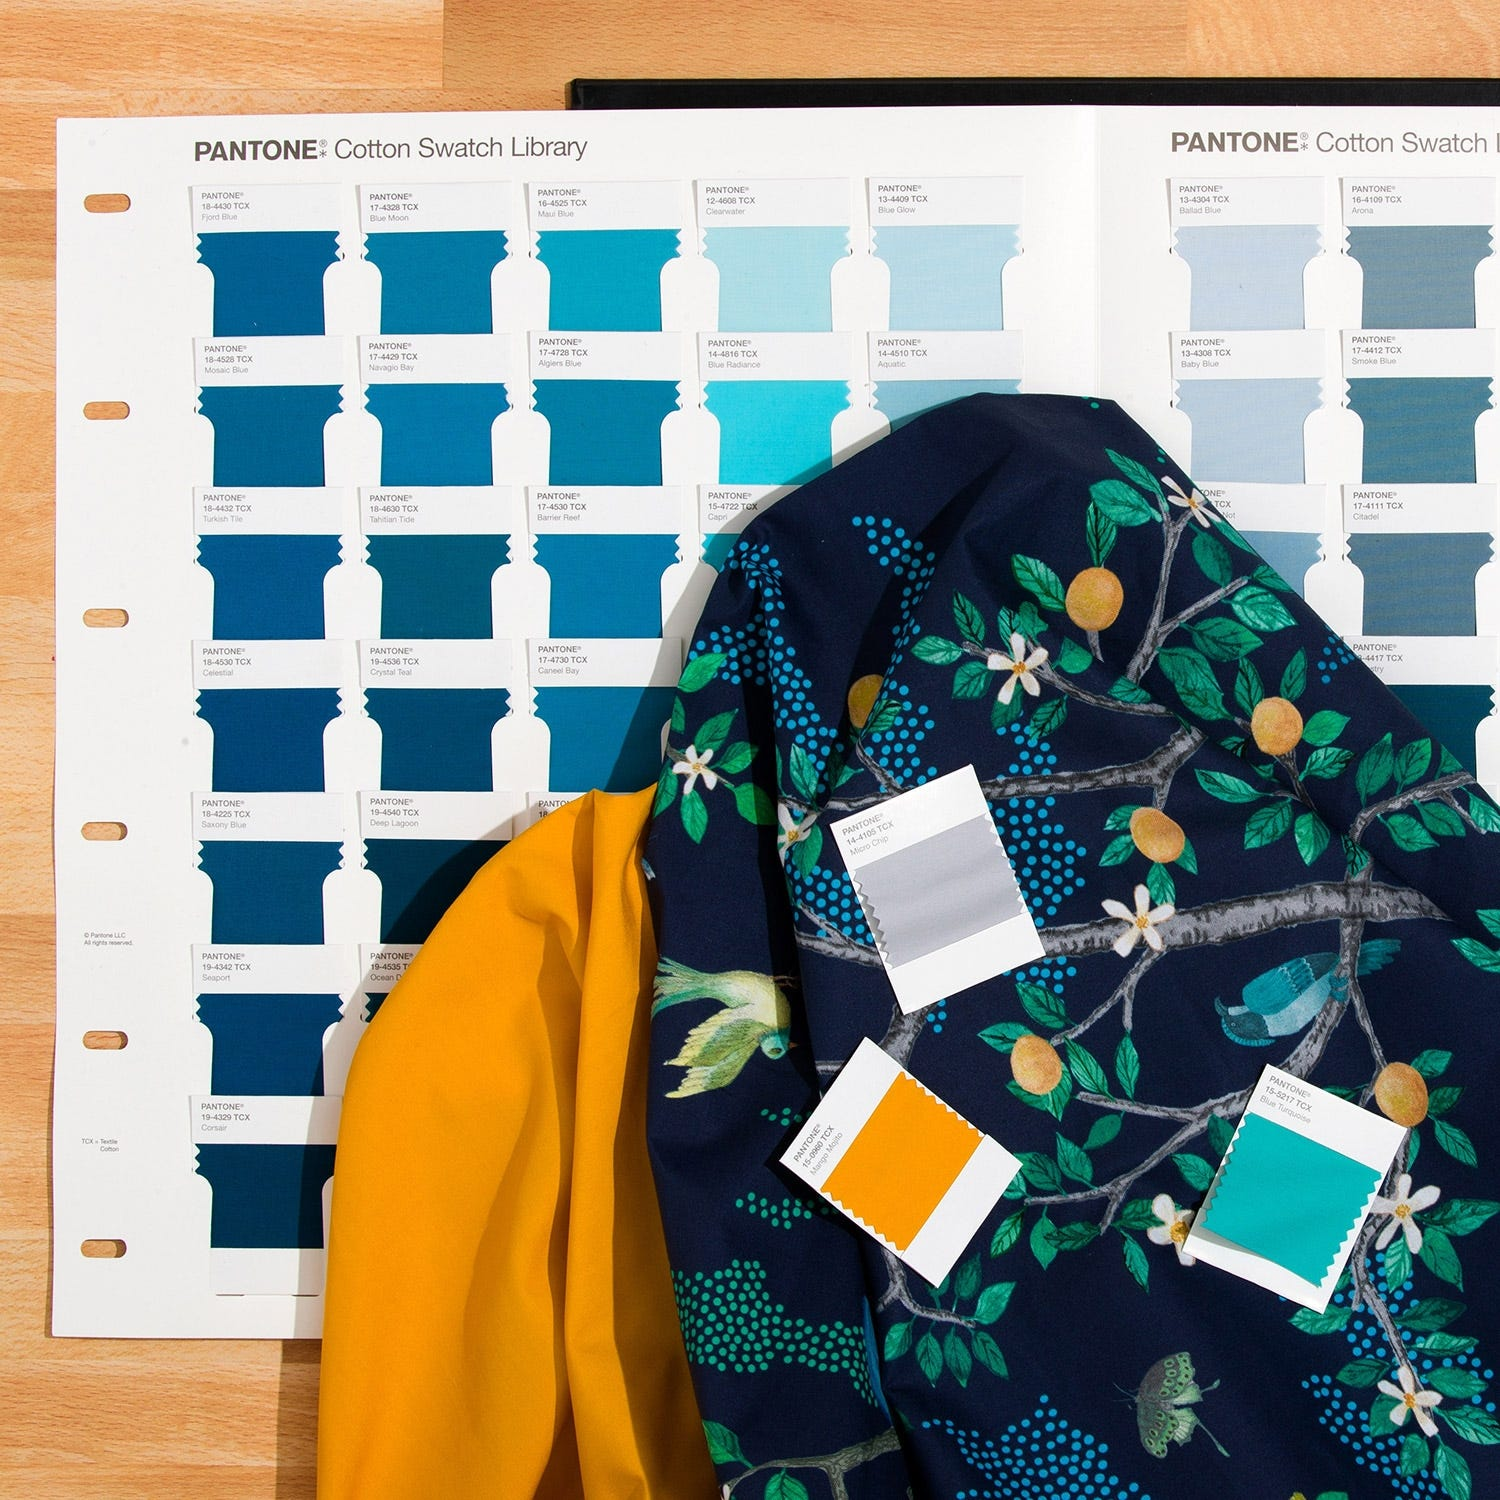 fhic100a-pantone-fashion-home-and-interiors-cotton-swatch-library-1